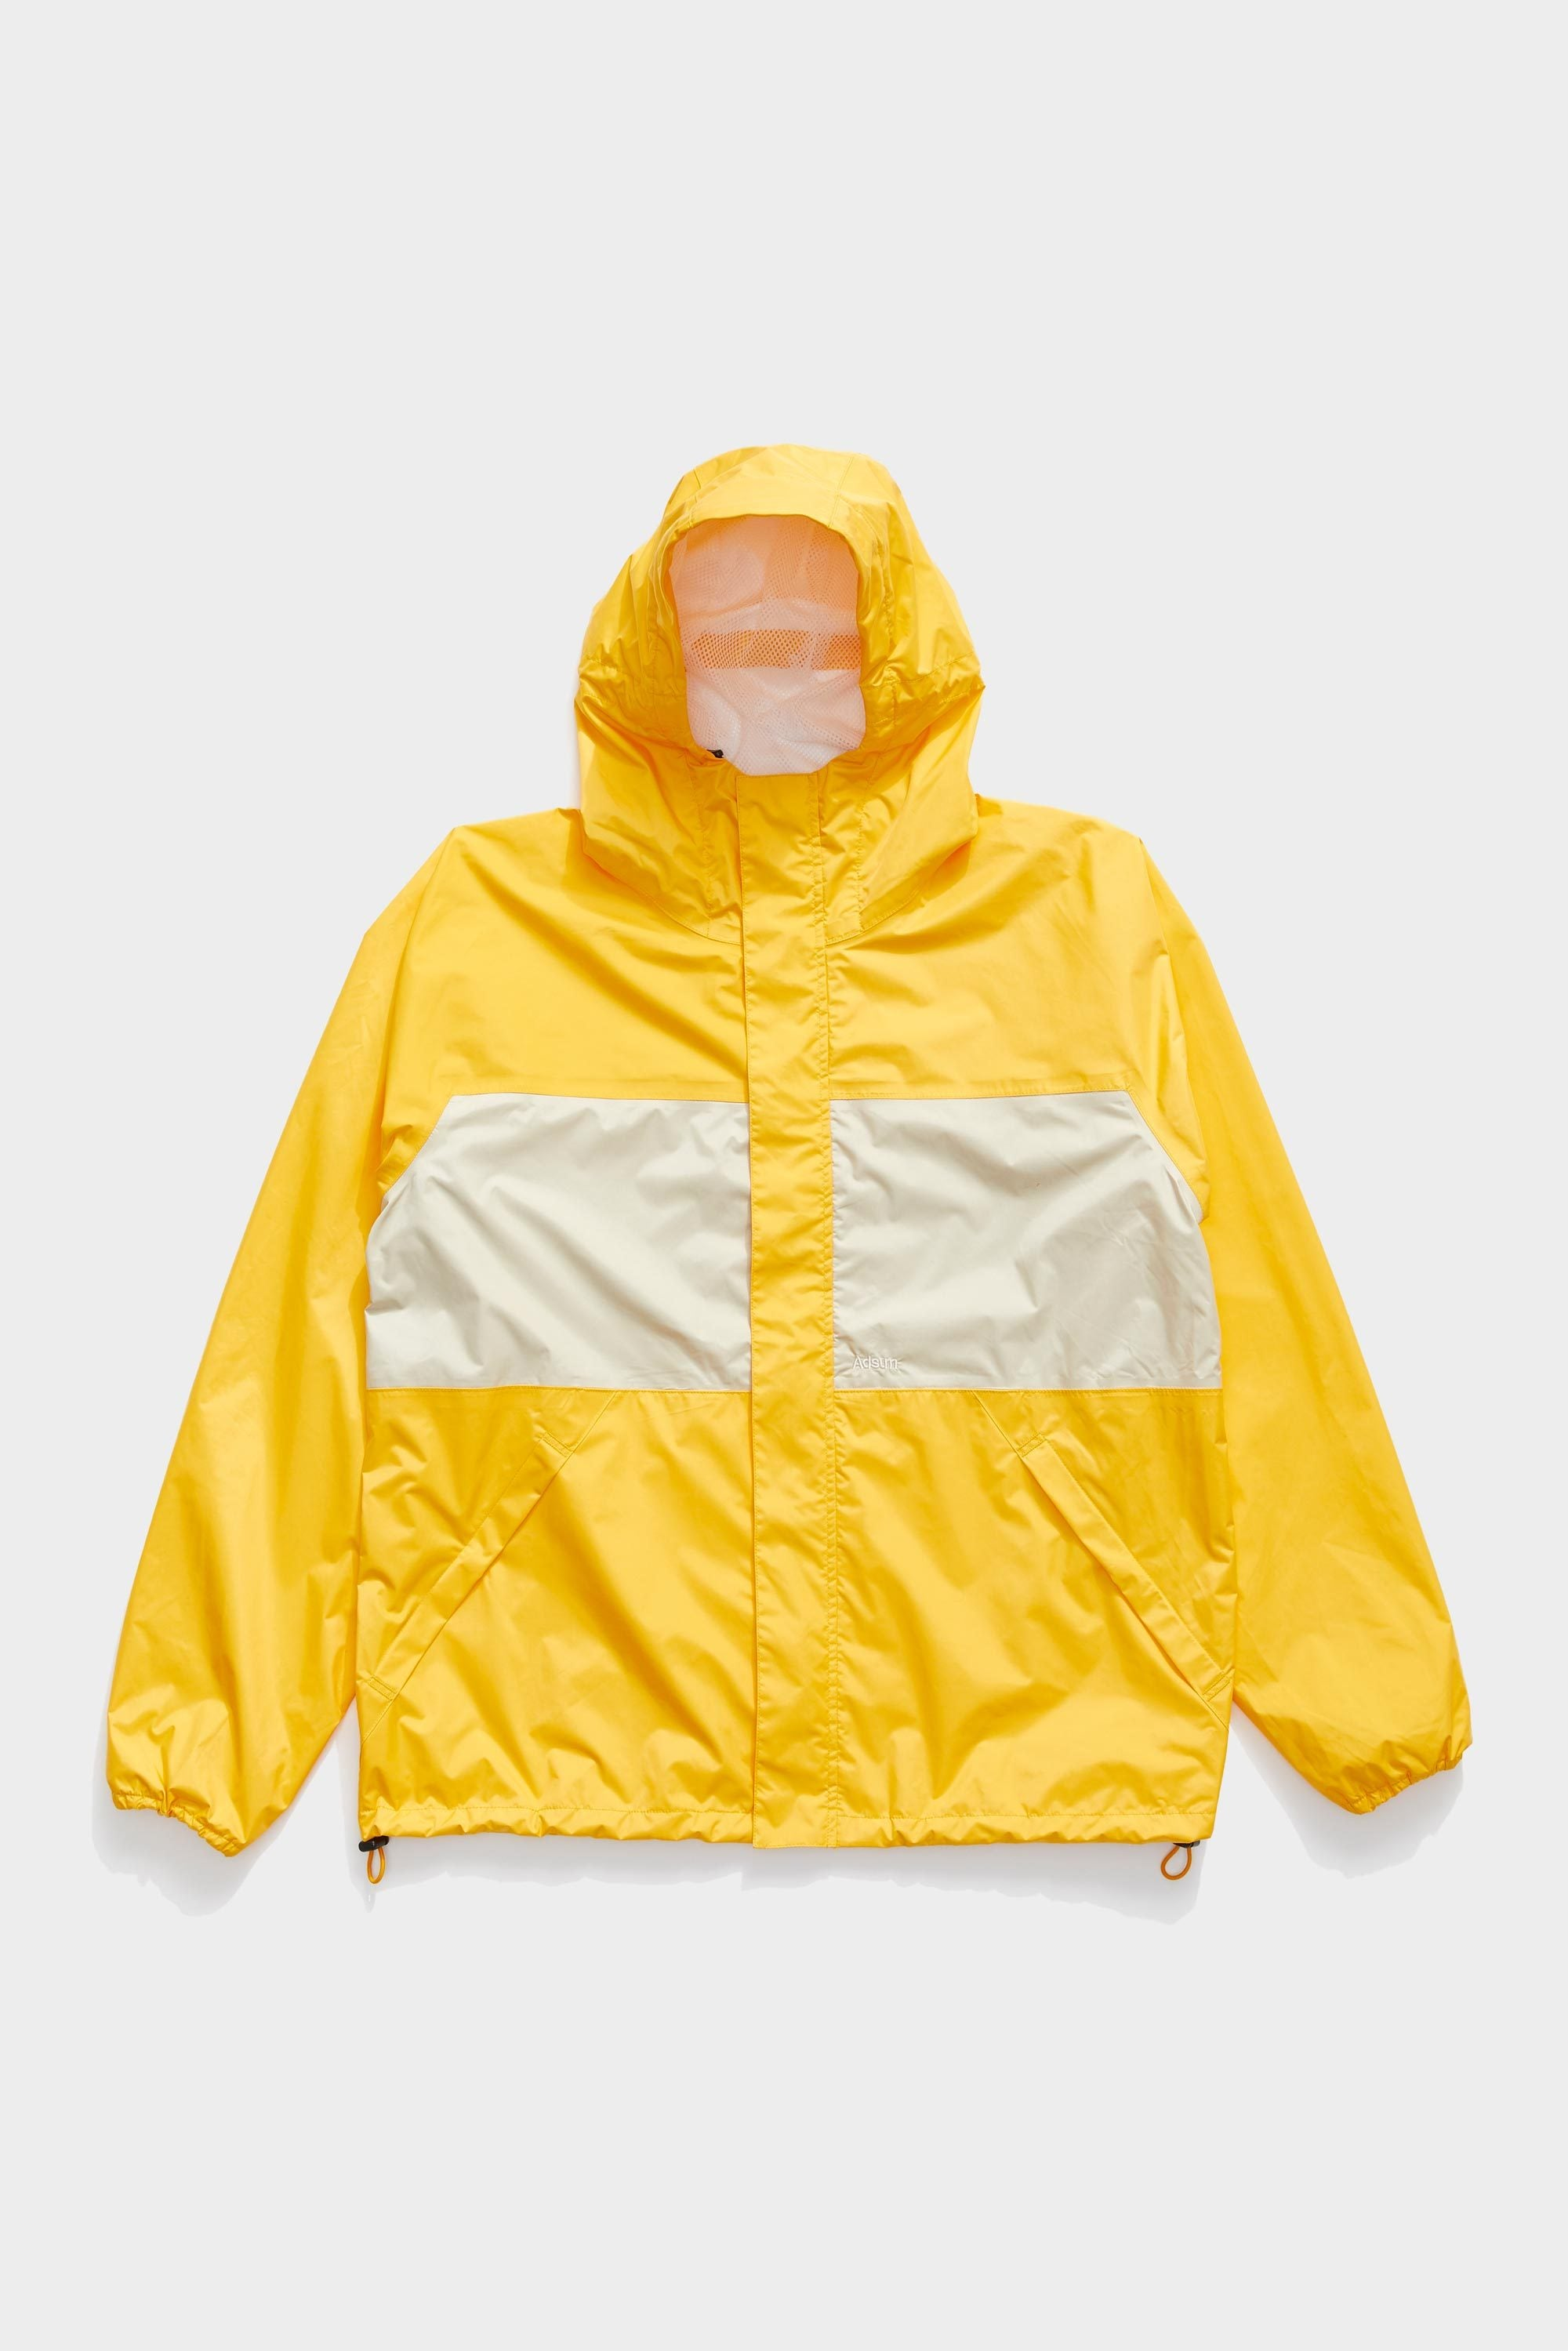 Full Zip Anorak - Yellow / Beige